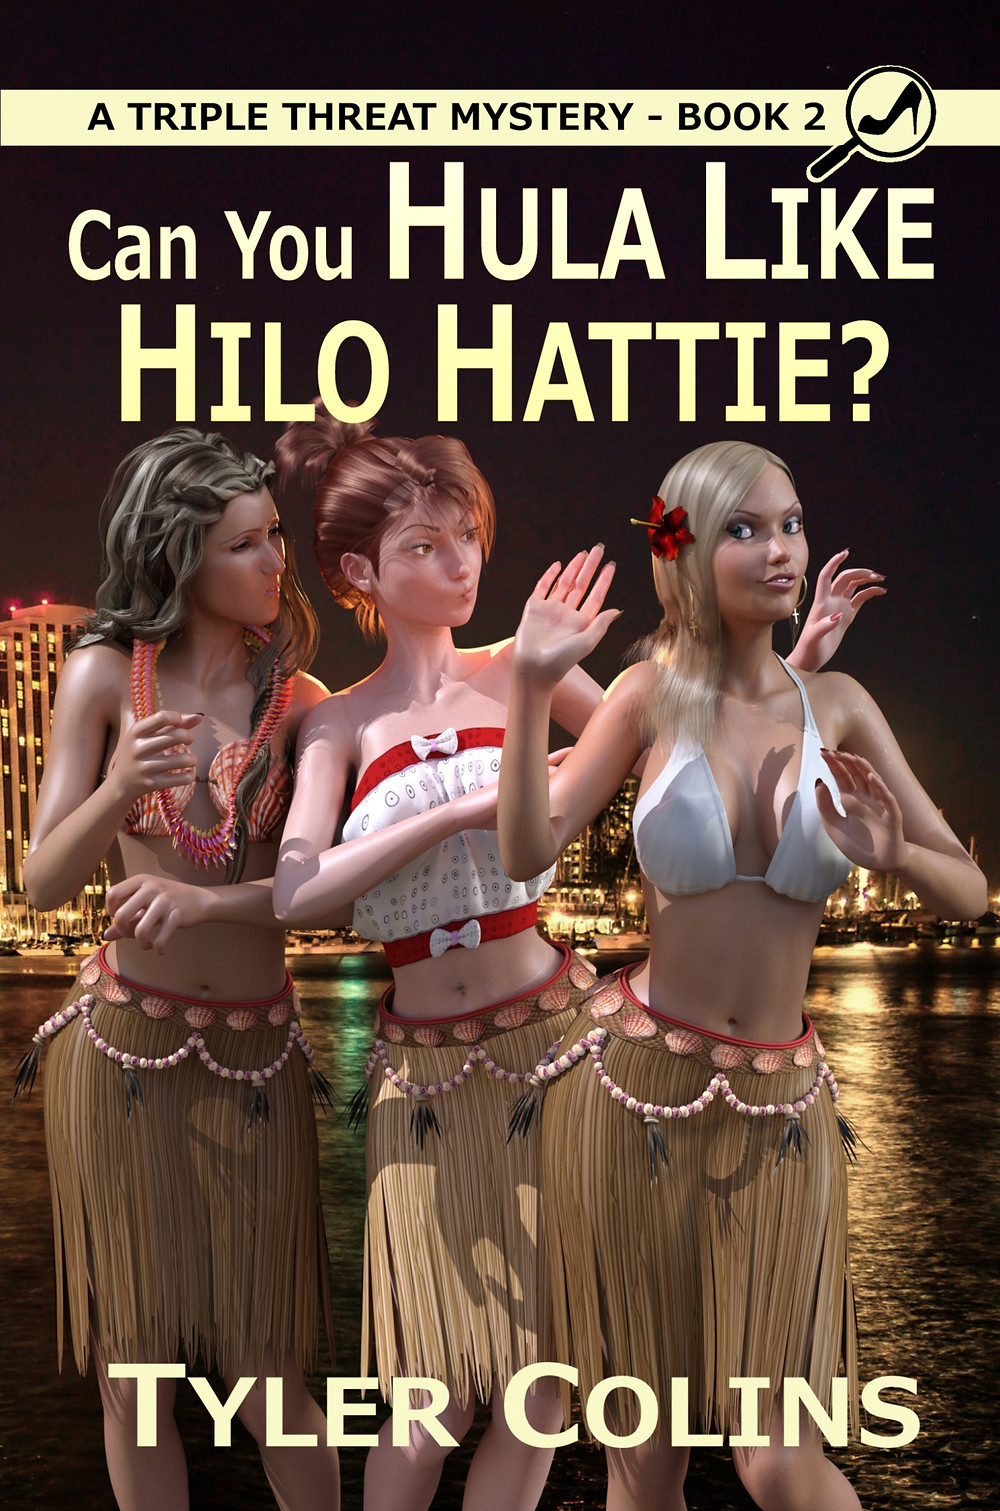 Tyler Collins - Can You Hula Like A Hilo Hattie